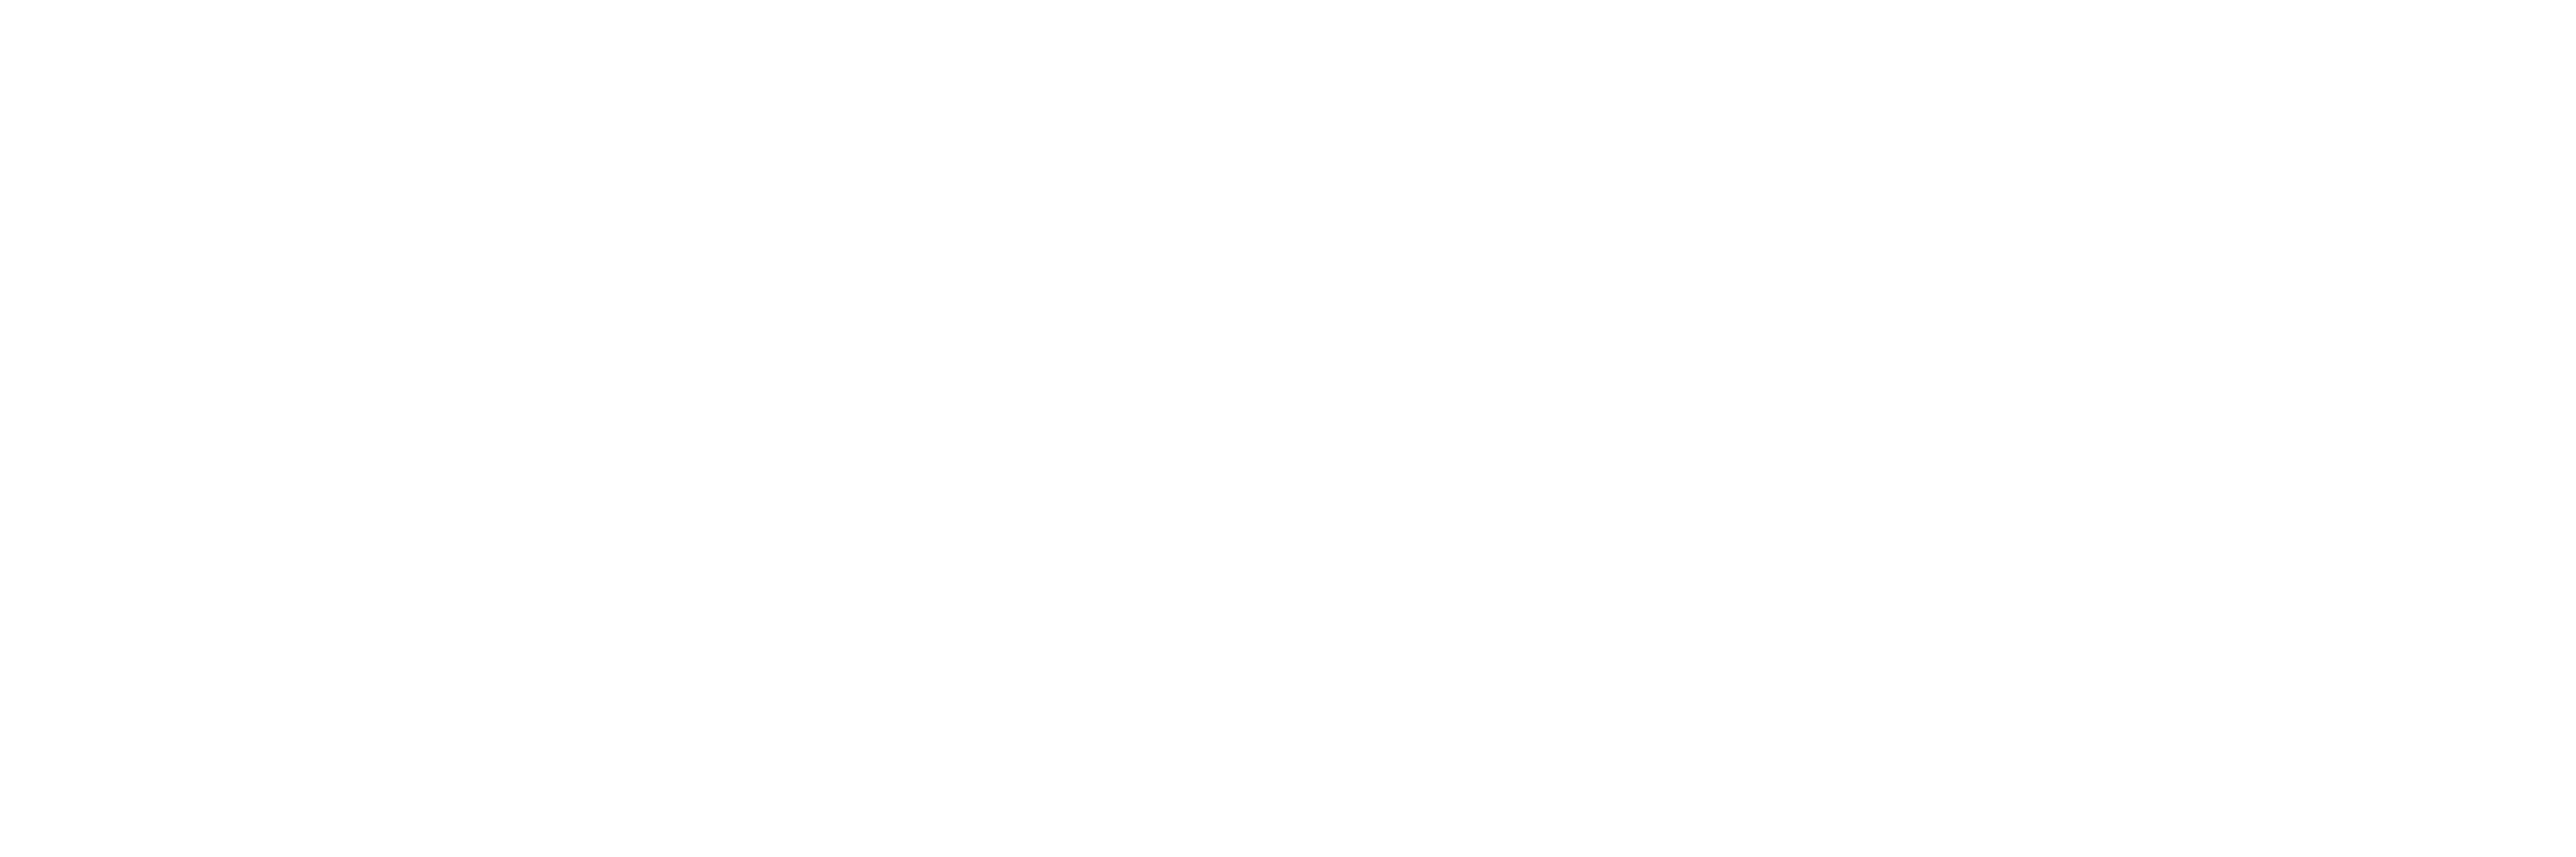 Return to Choptank Electric Cooperative